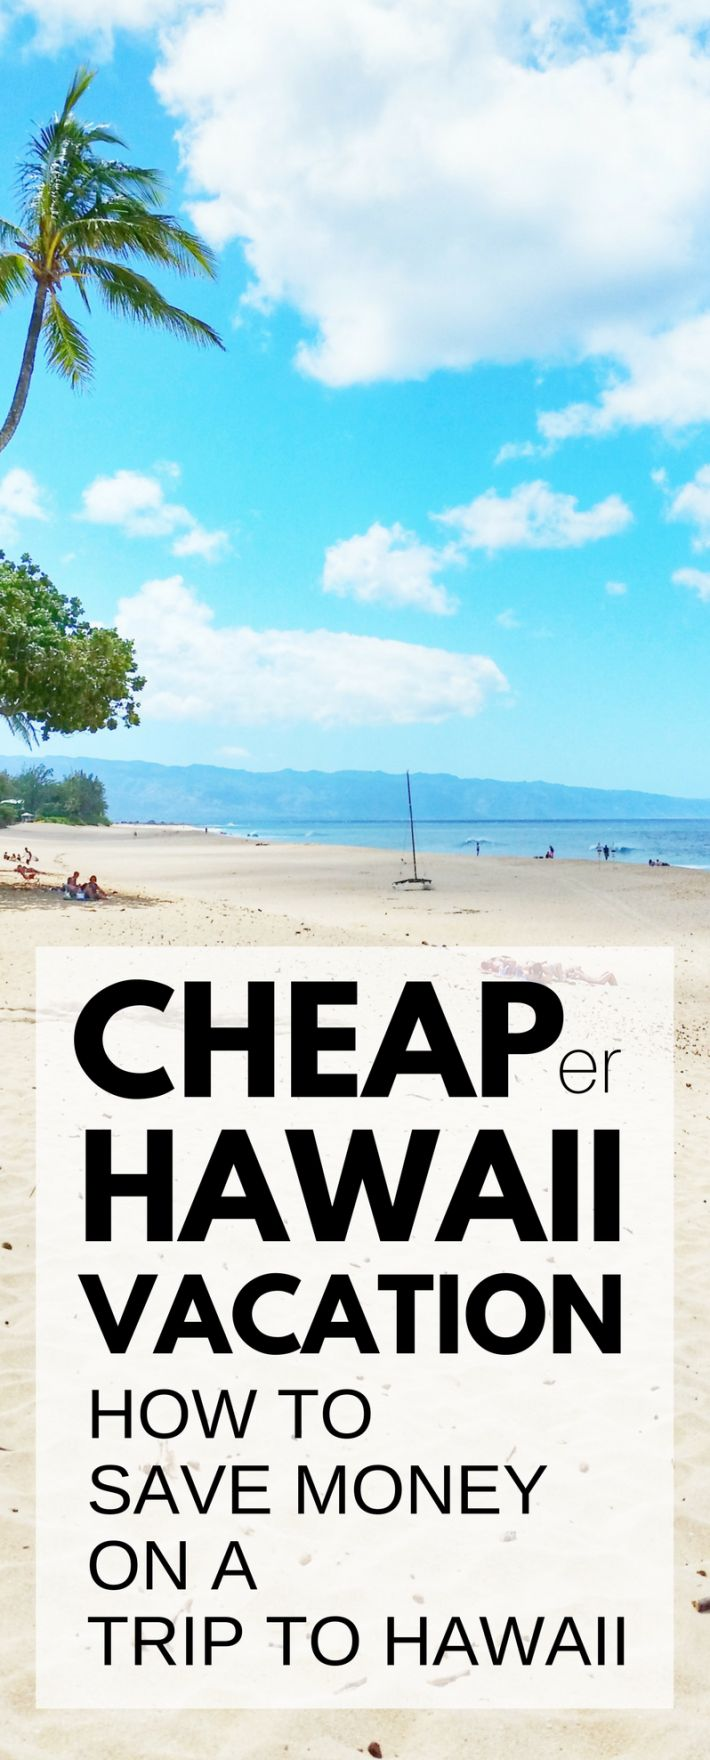 Travel tips for a cheap Hawaii vacation. How to save money on a trip to Hawaii. Things to do on a budget in Oahu, Maui, Kauai, Big Island. Beaches, snorkeling, hiking! What you pack, wear can add costs for Hawaii packing list, but  cheap (er) flights, hotels (airbnb vacation rentals), food, free activities. USA bucket list destination with Waikiki, North Shore! Budget travel tips. Honeymoon destinations for two. Dream beach vacations. #hawaii #oahu #kauai #maui #bigisland